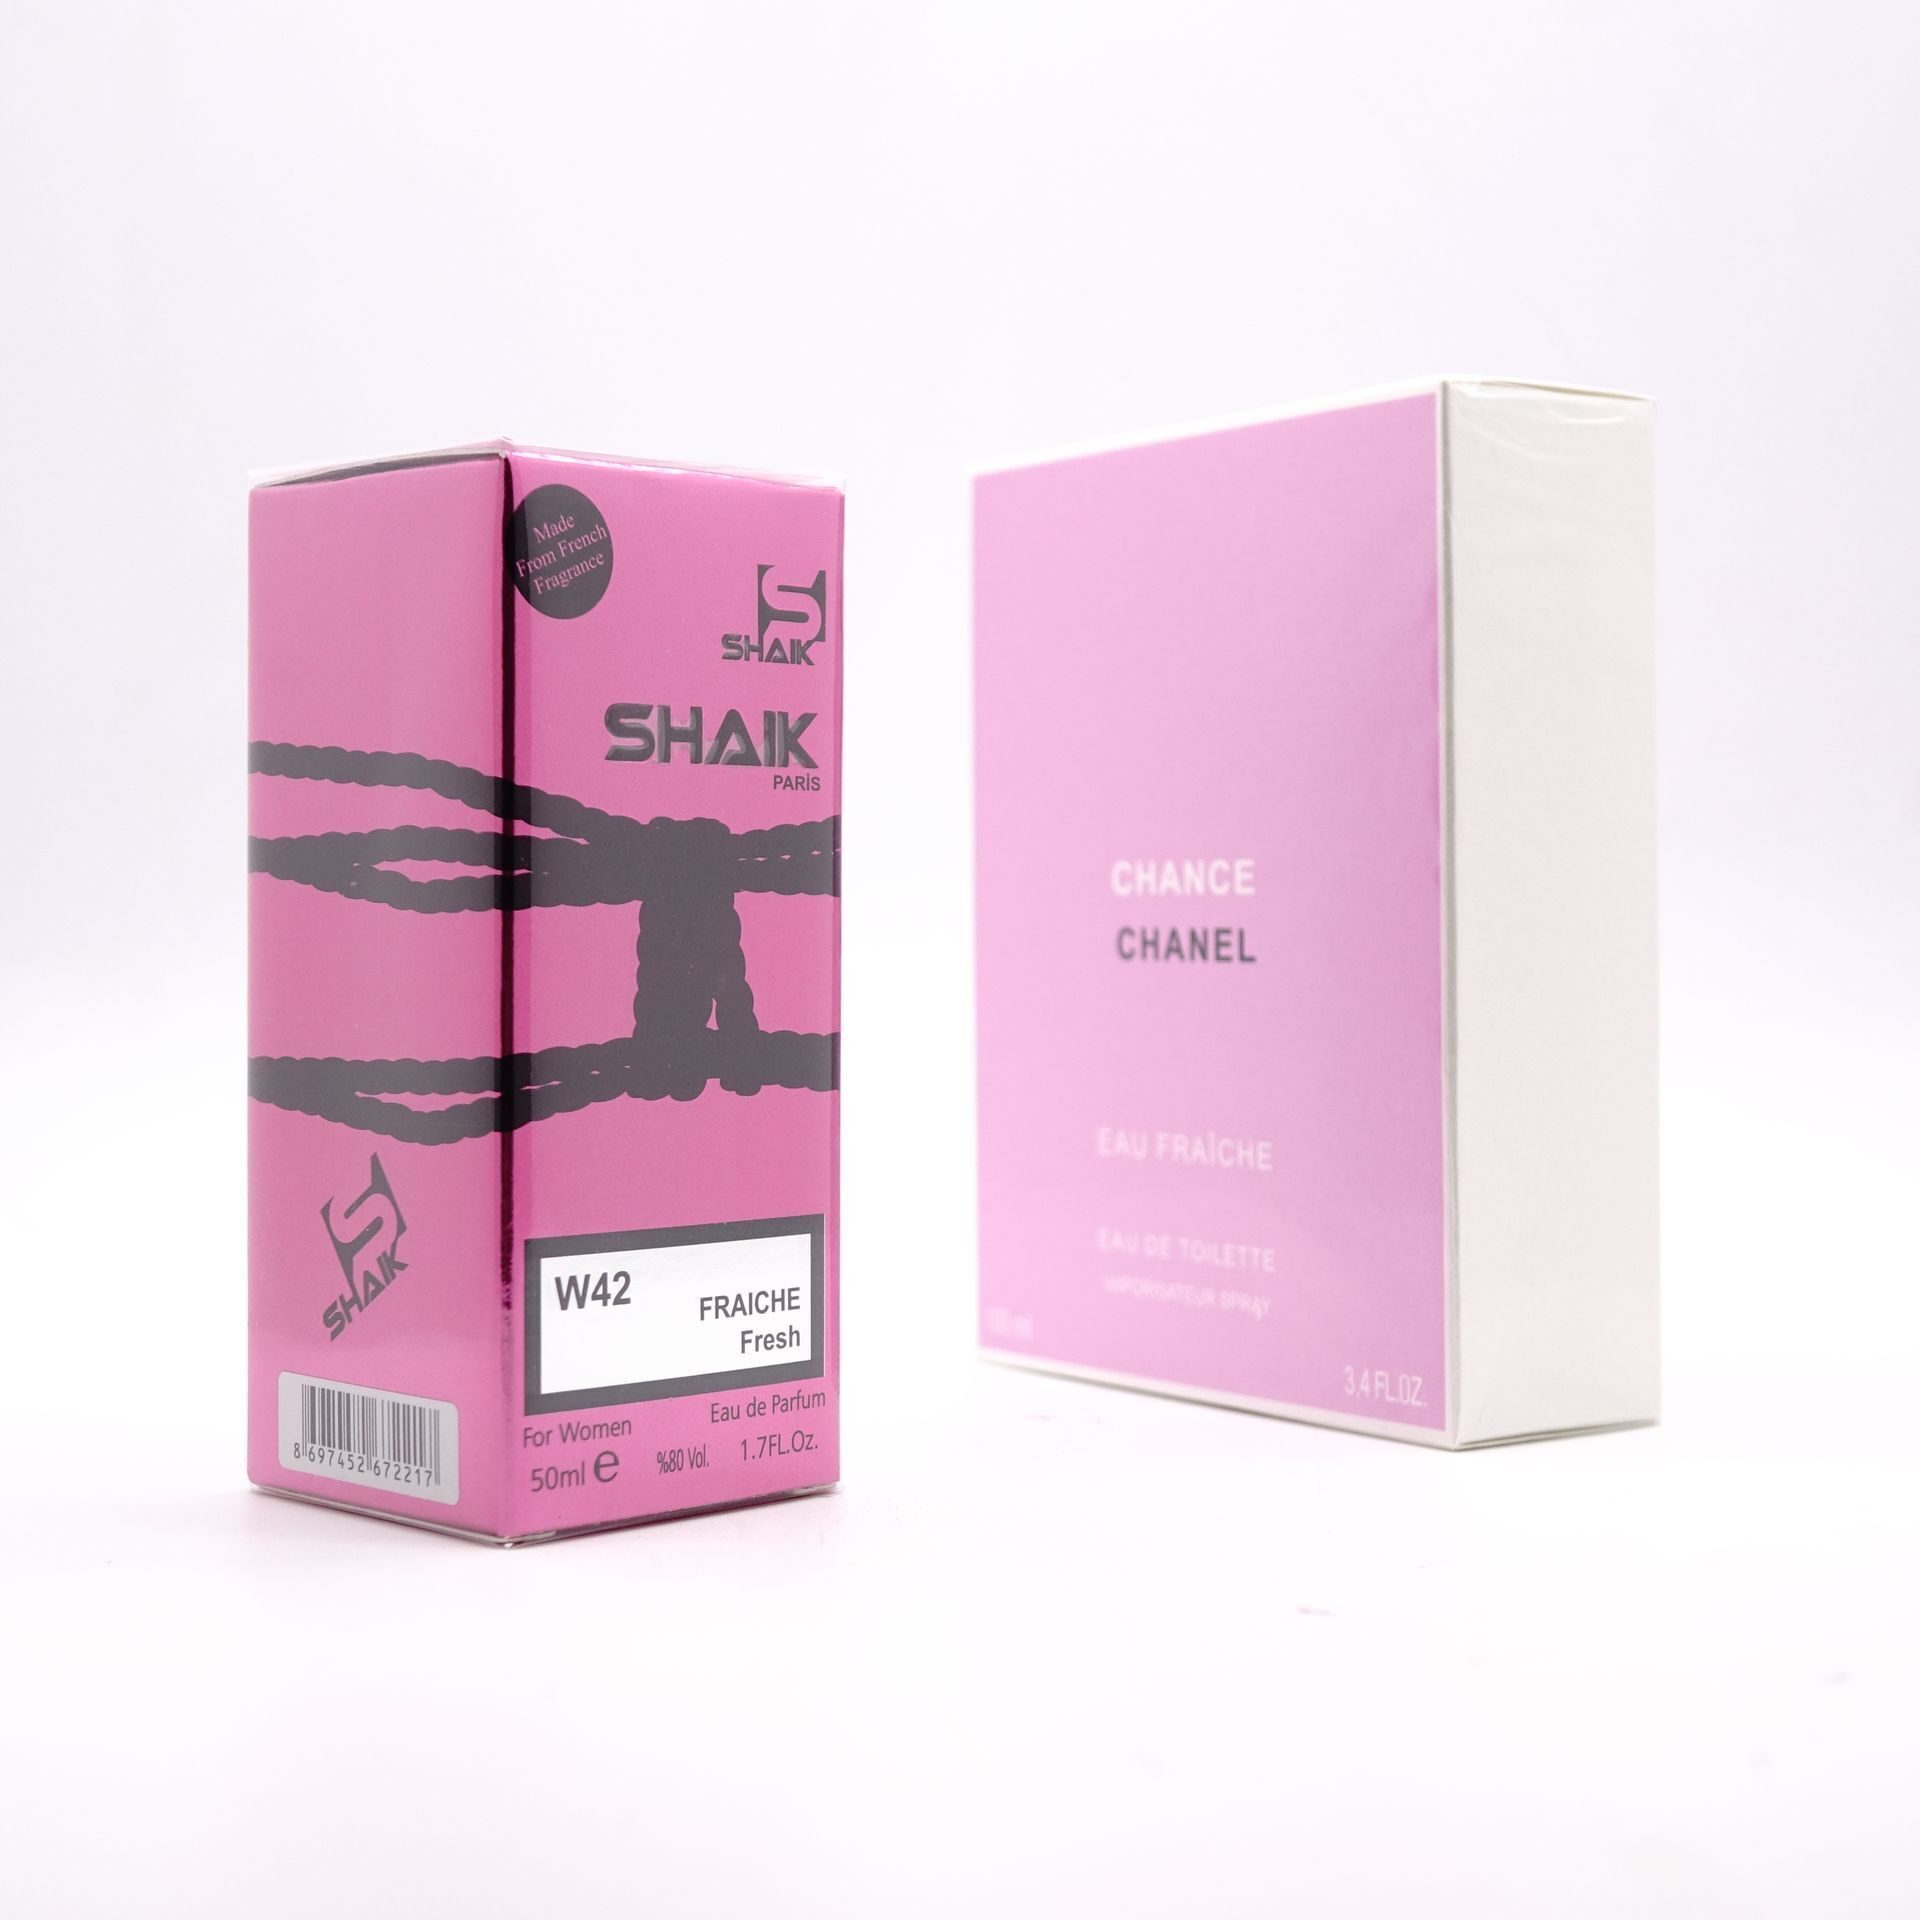 SHAIK W 42 (CHANEL CHANCE EAU FRAICHE FOR WOMEN) 50ml